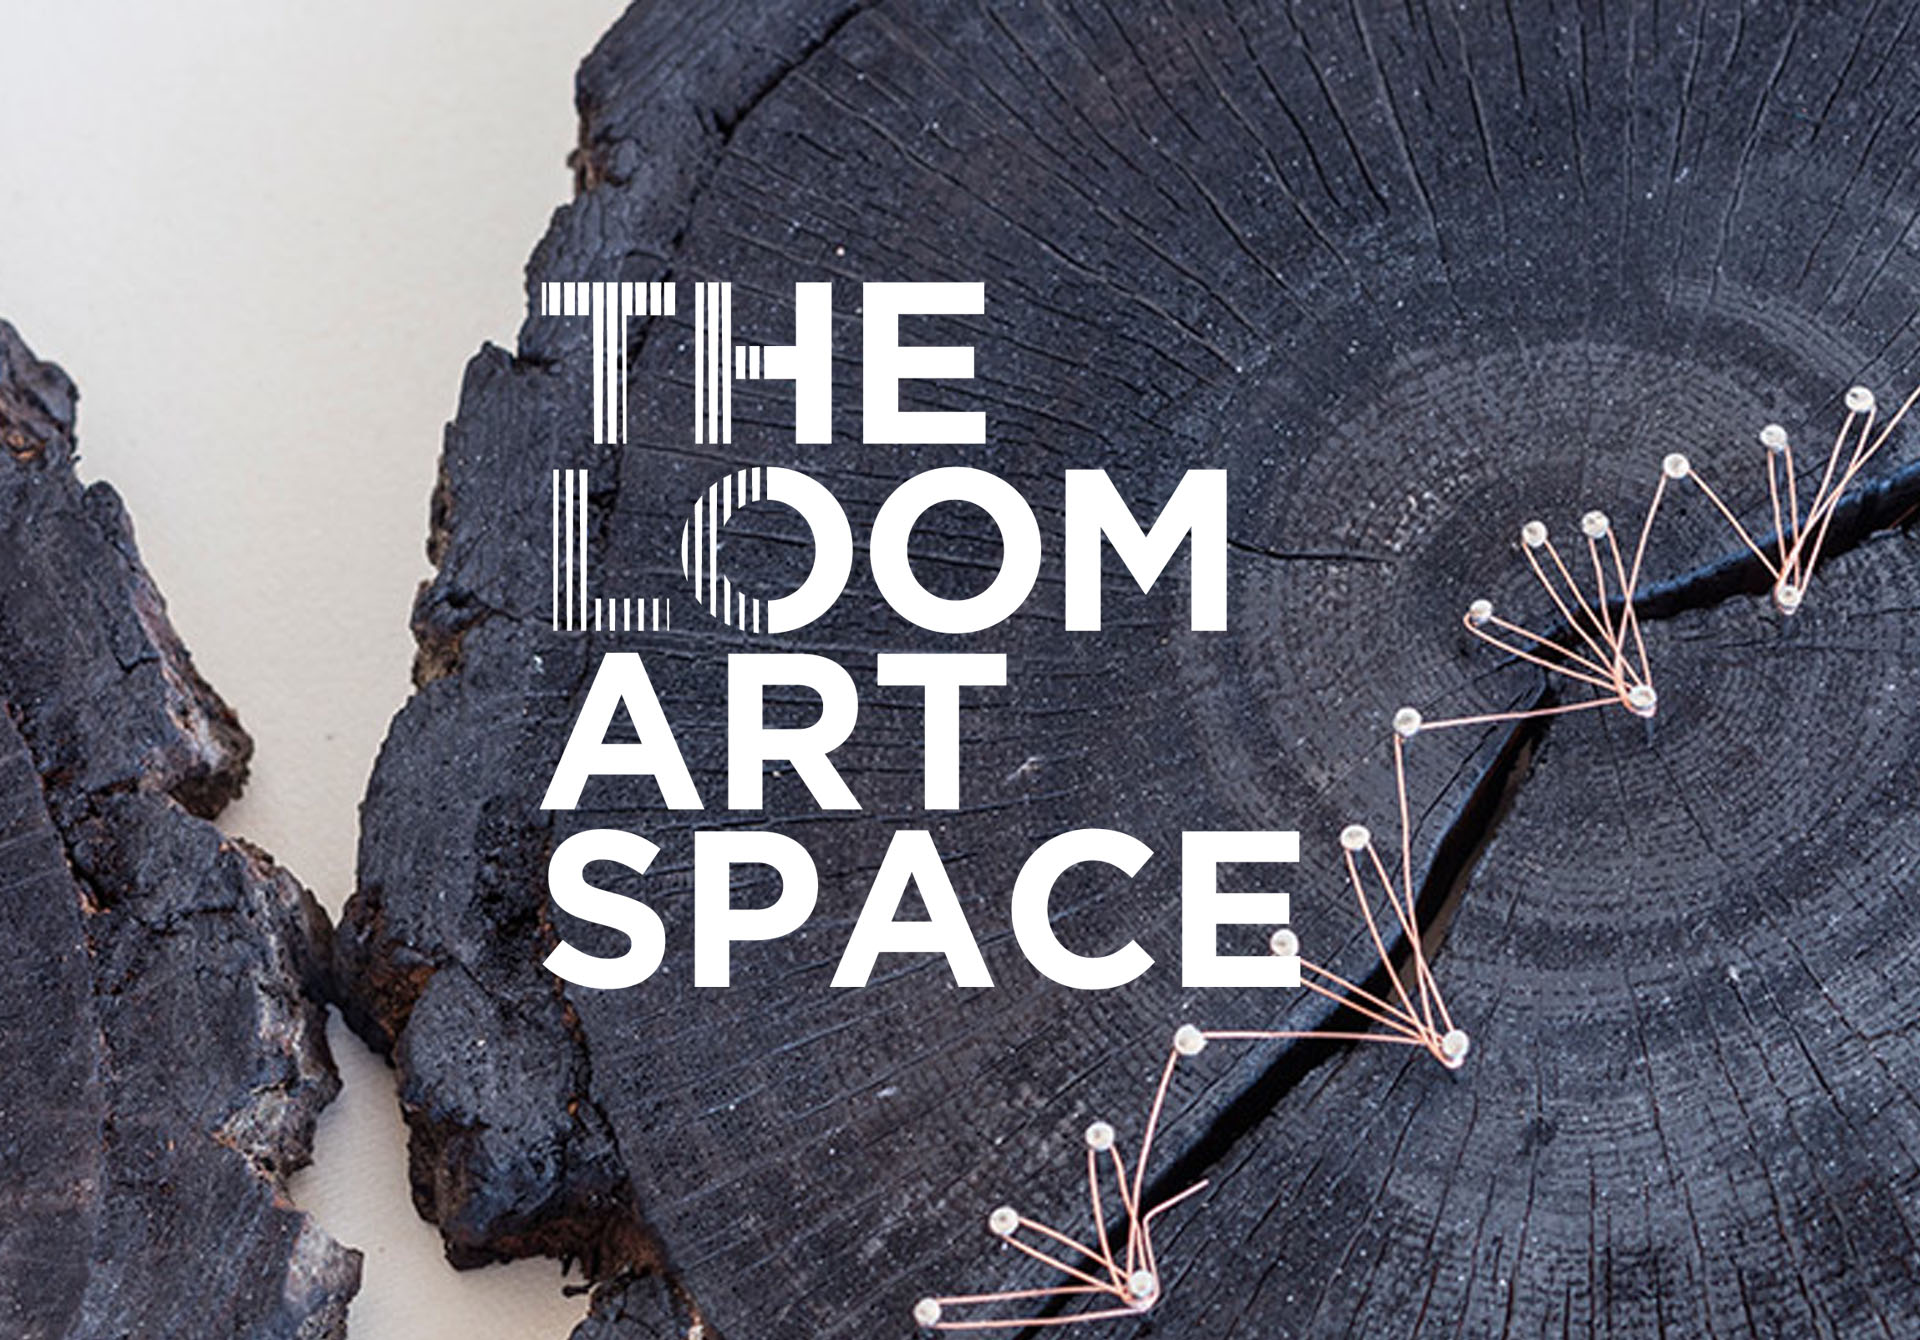 1-The Loom Art Space